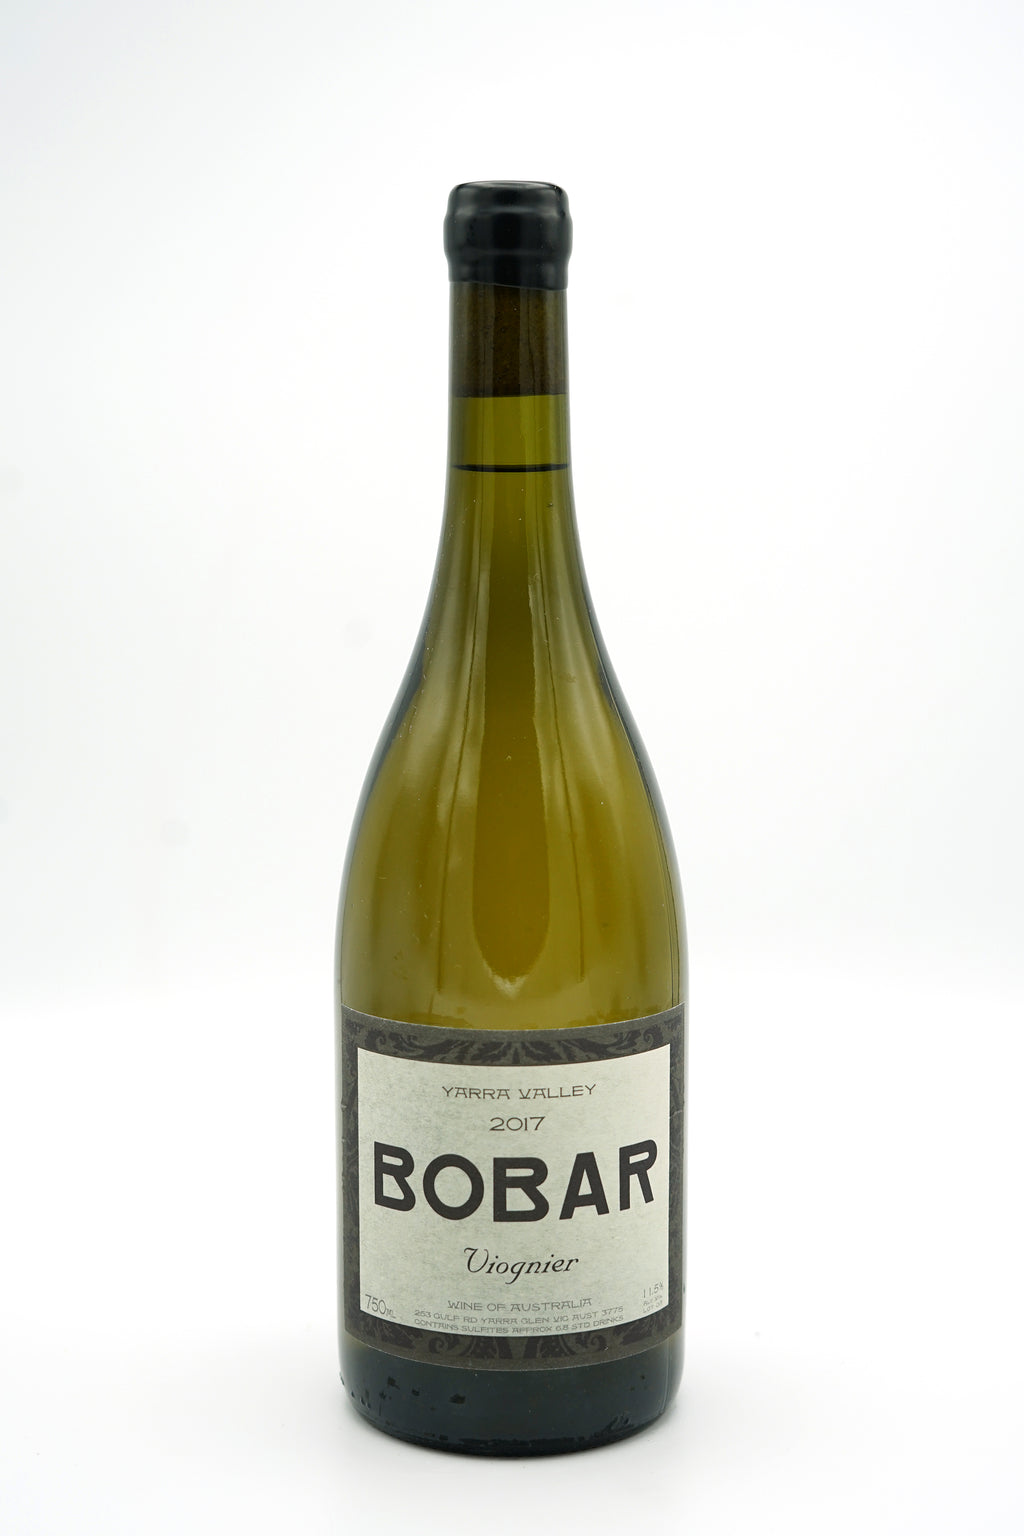 Bobar Viognier 2017 - Bobar Wines - SOLD OUT